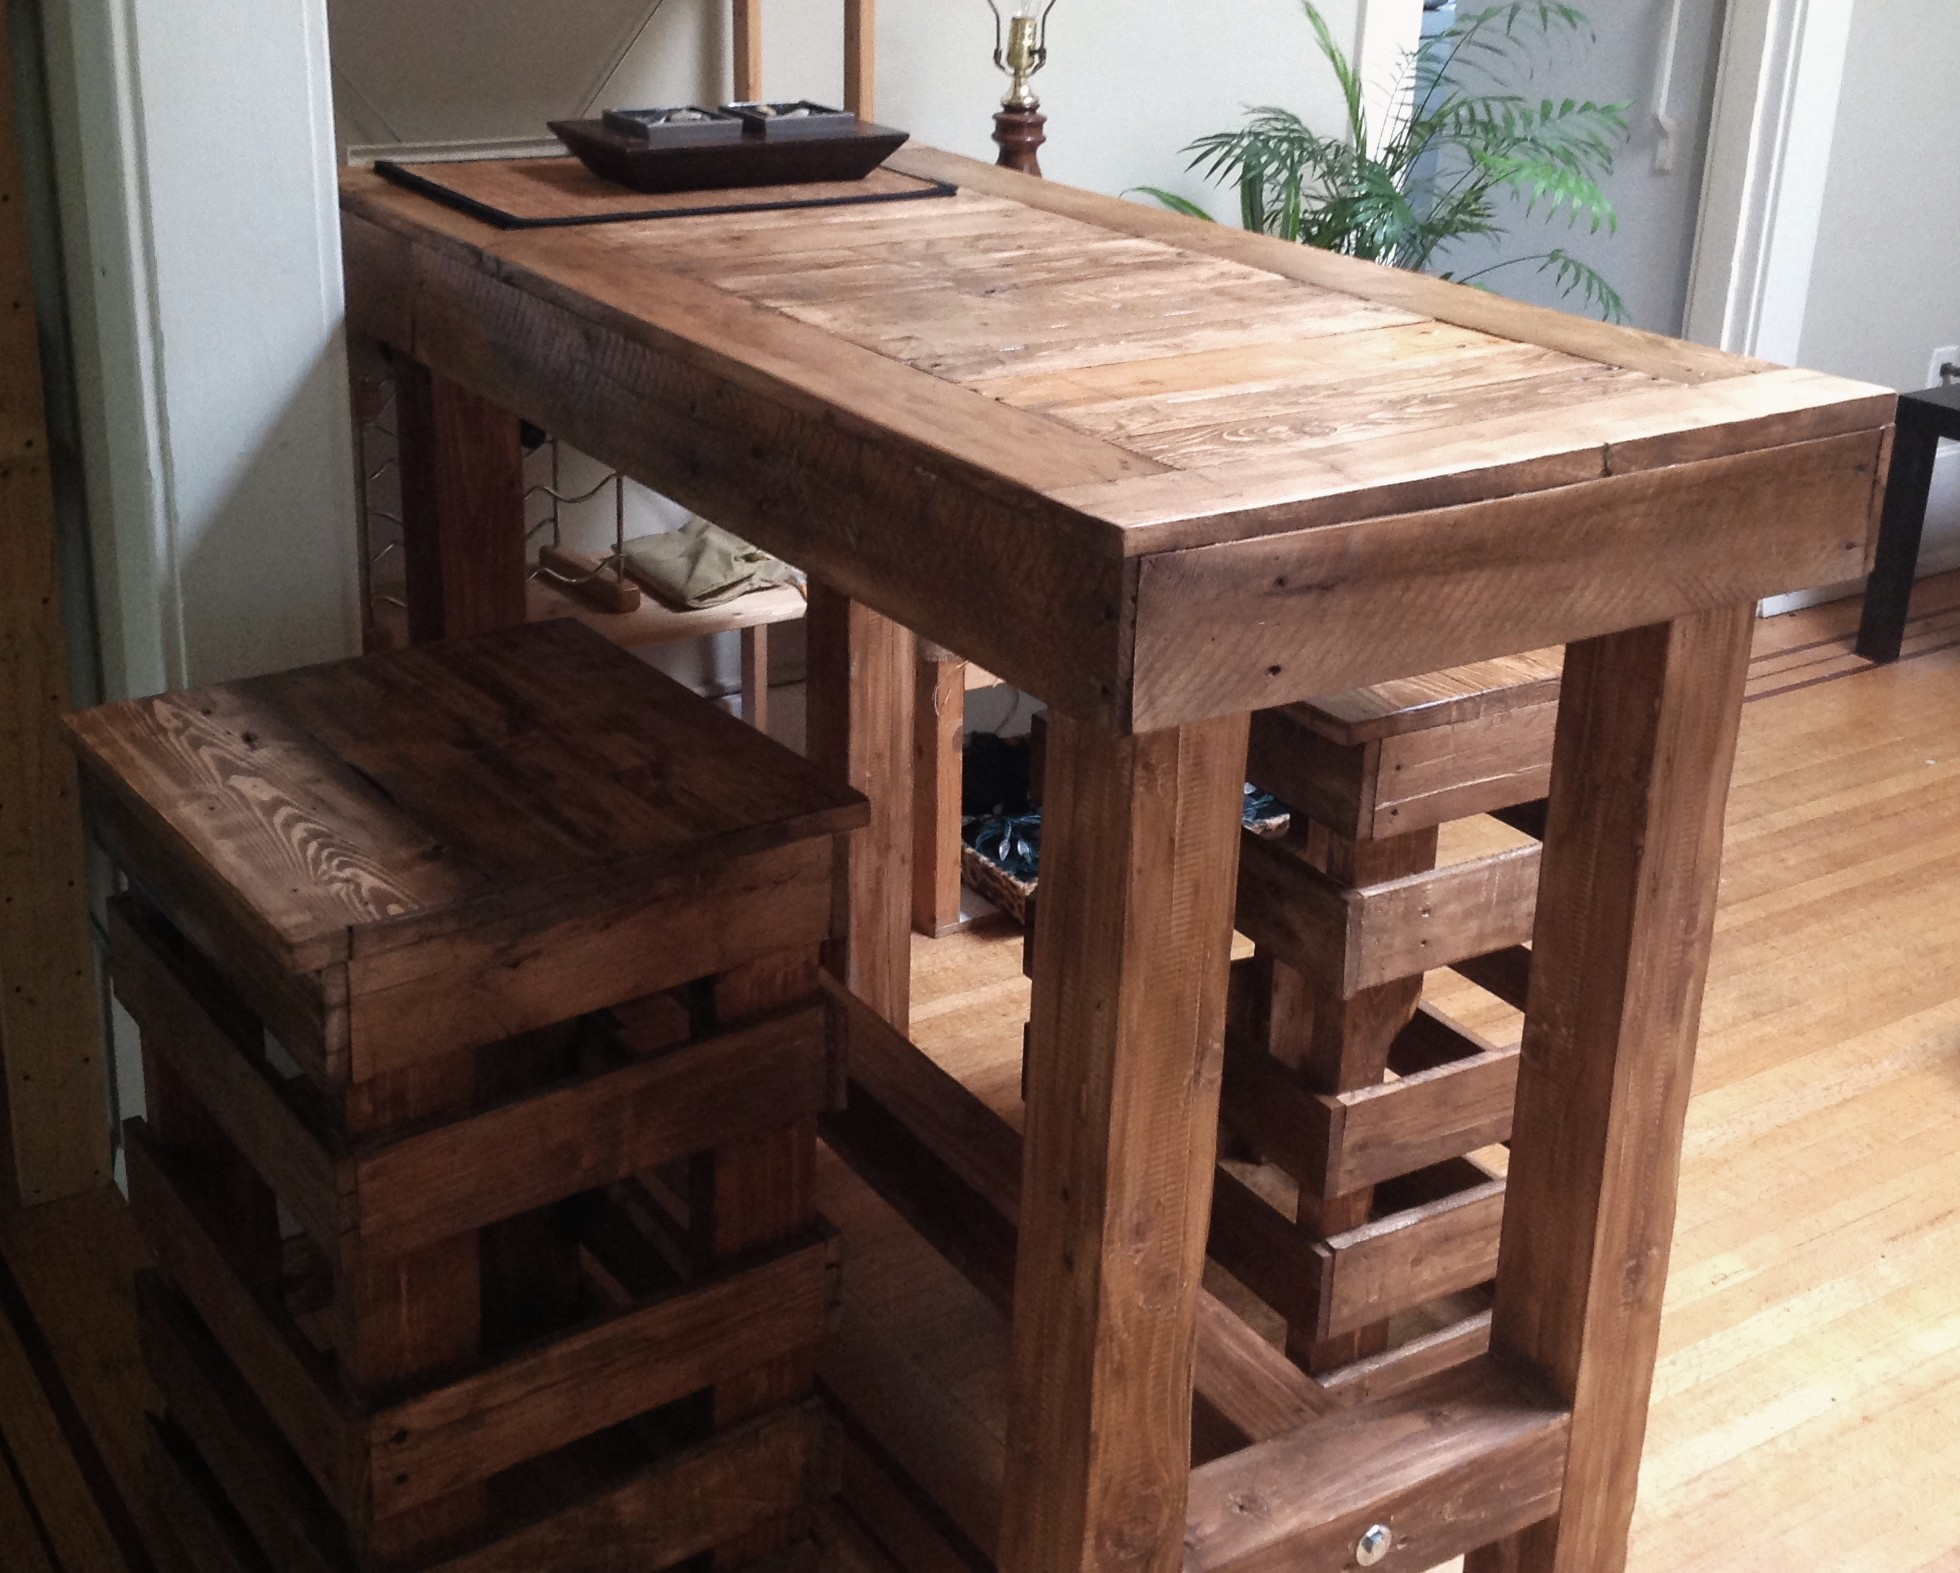 How To Build A Bar Table Out Of Wood Plans DIY Free Download Portable ...